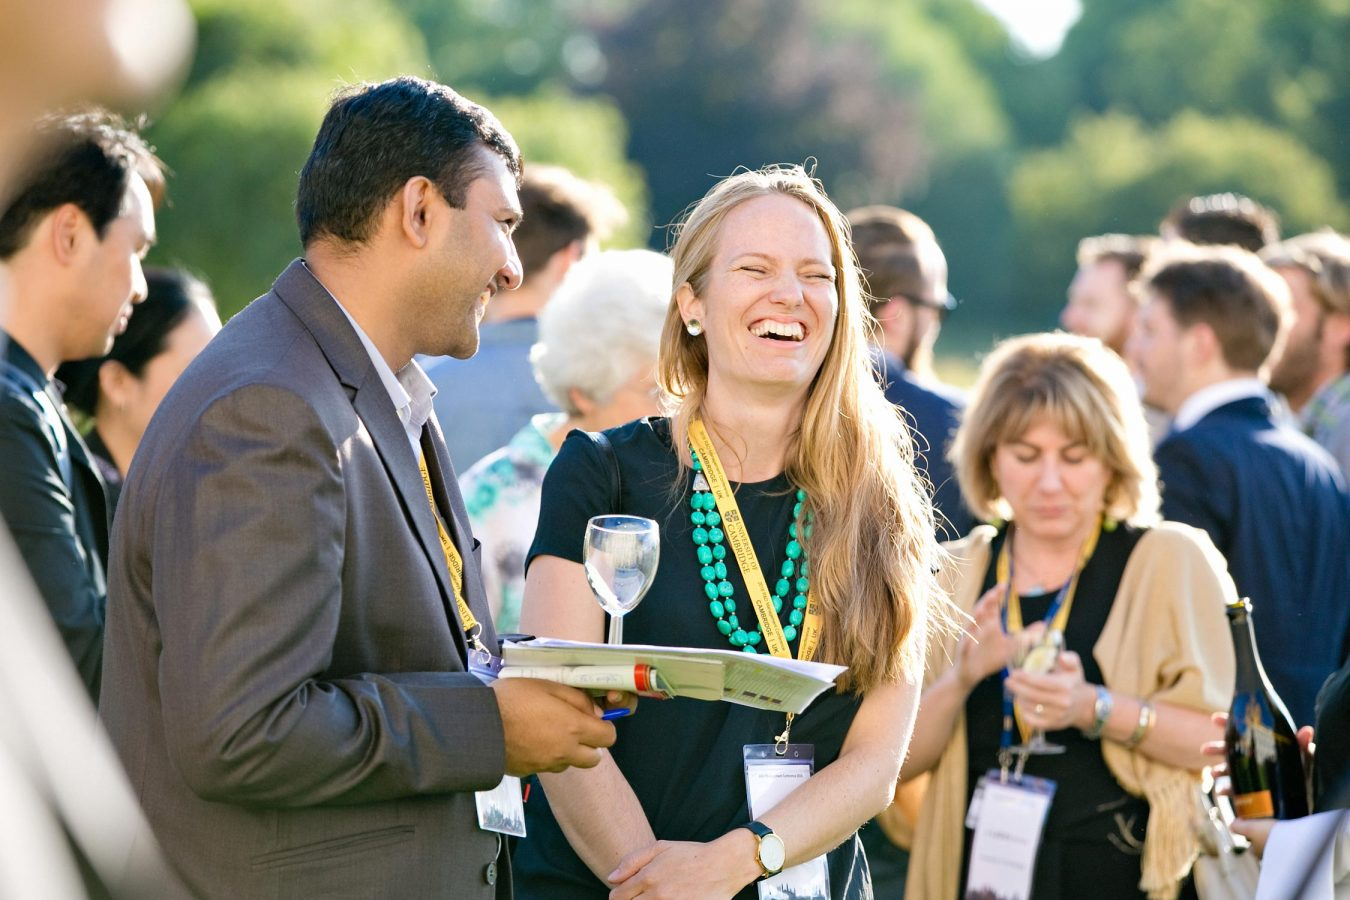 university-of-cambridge-conference-laughing-man-woman-delegates